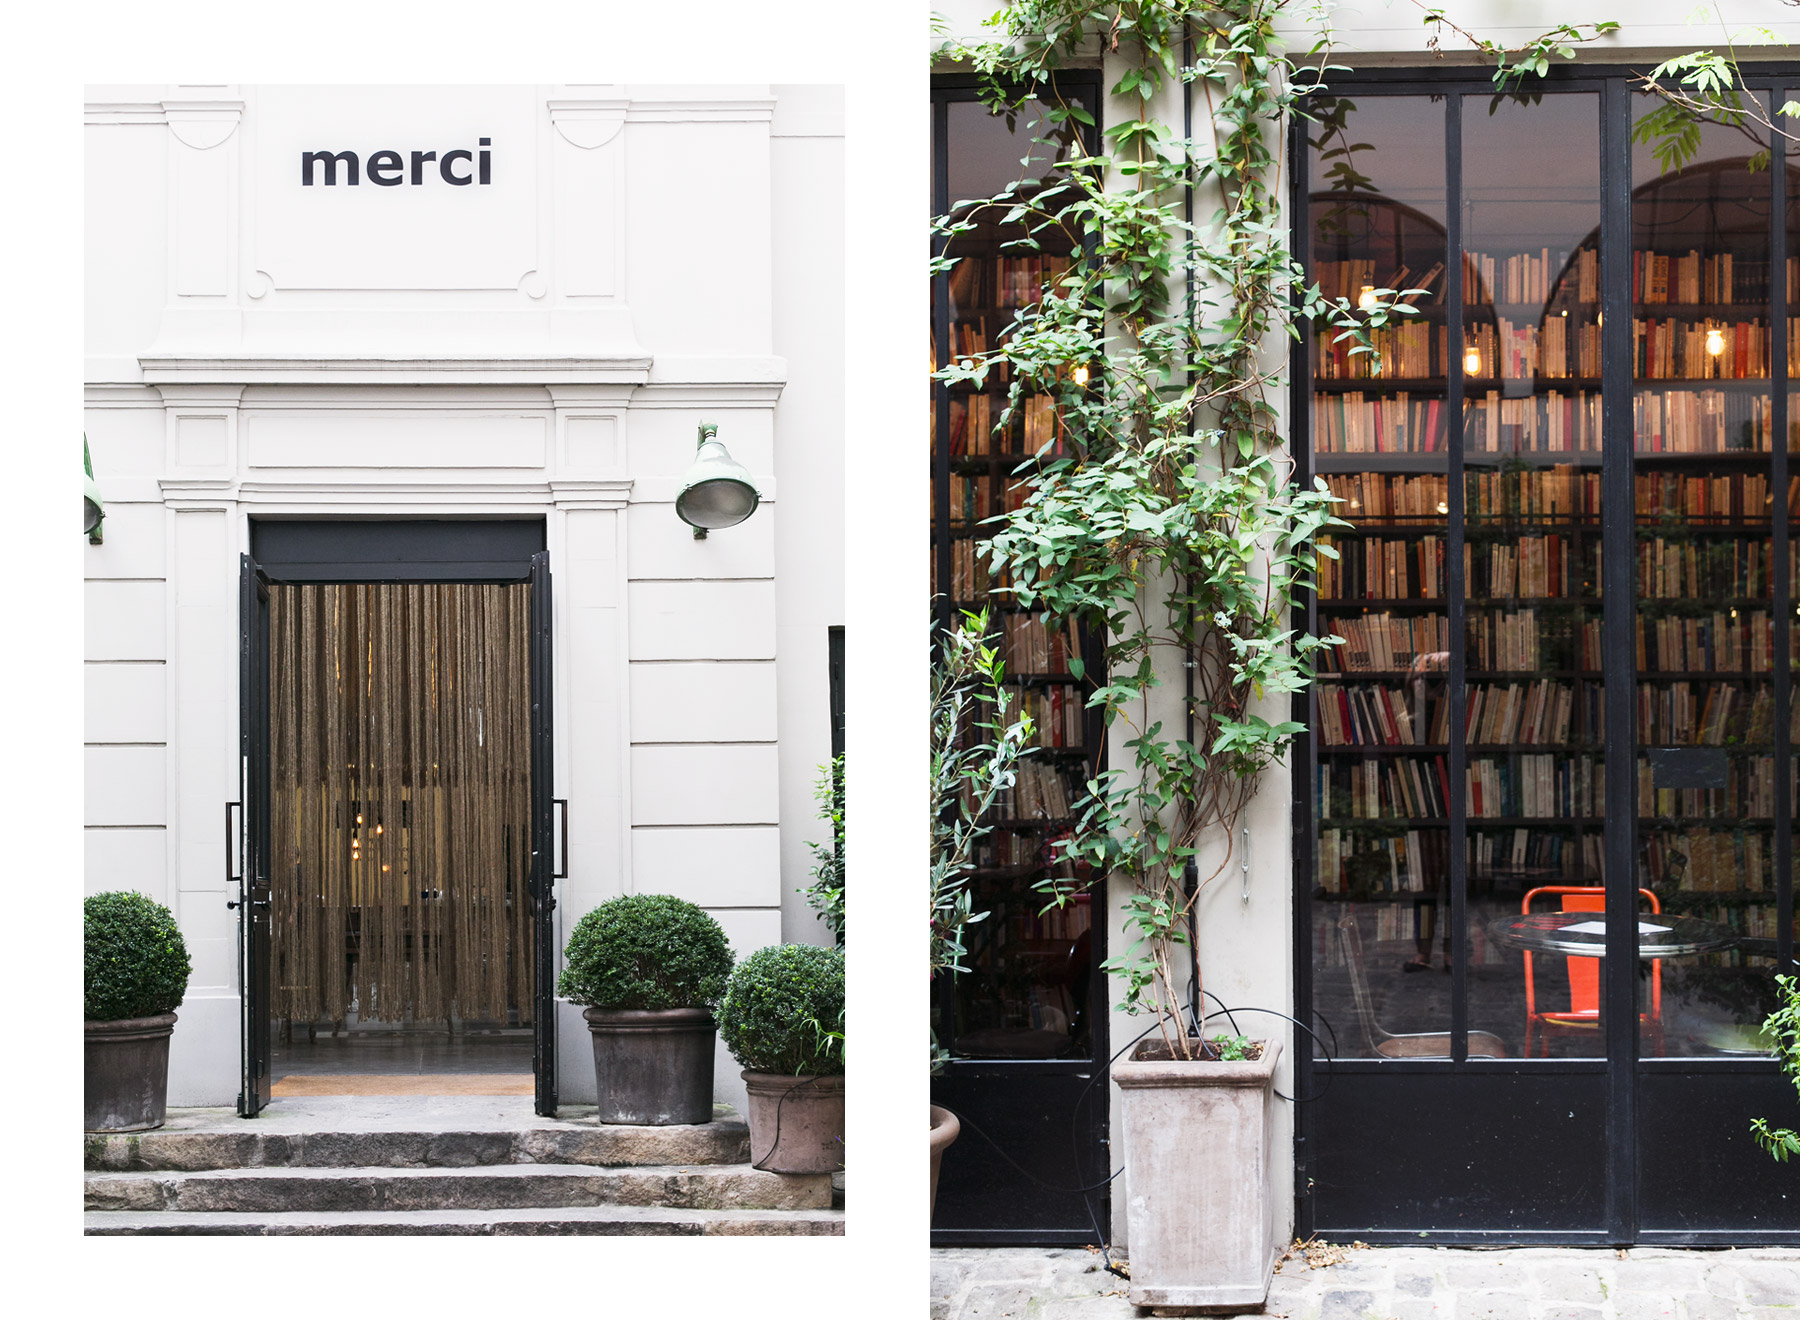 Merci shop in Paris by Carin Olsson (Paris in Four Months)